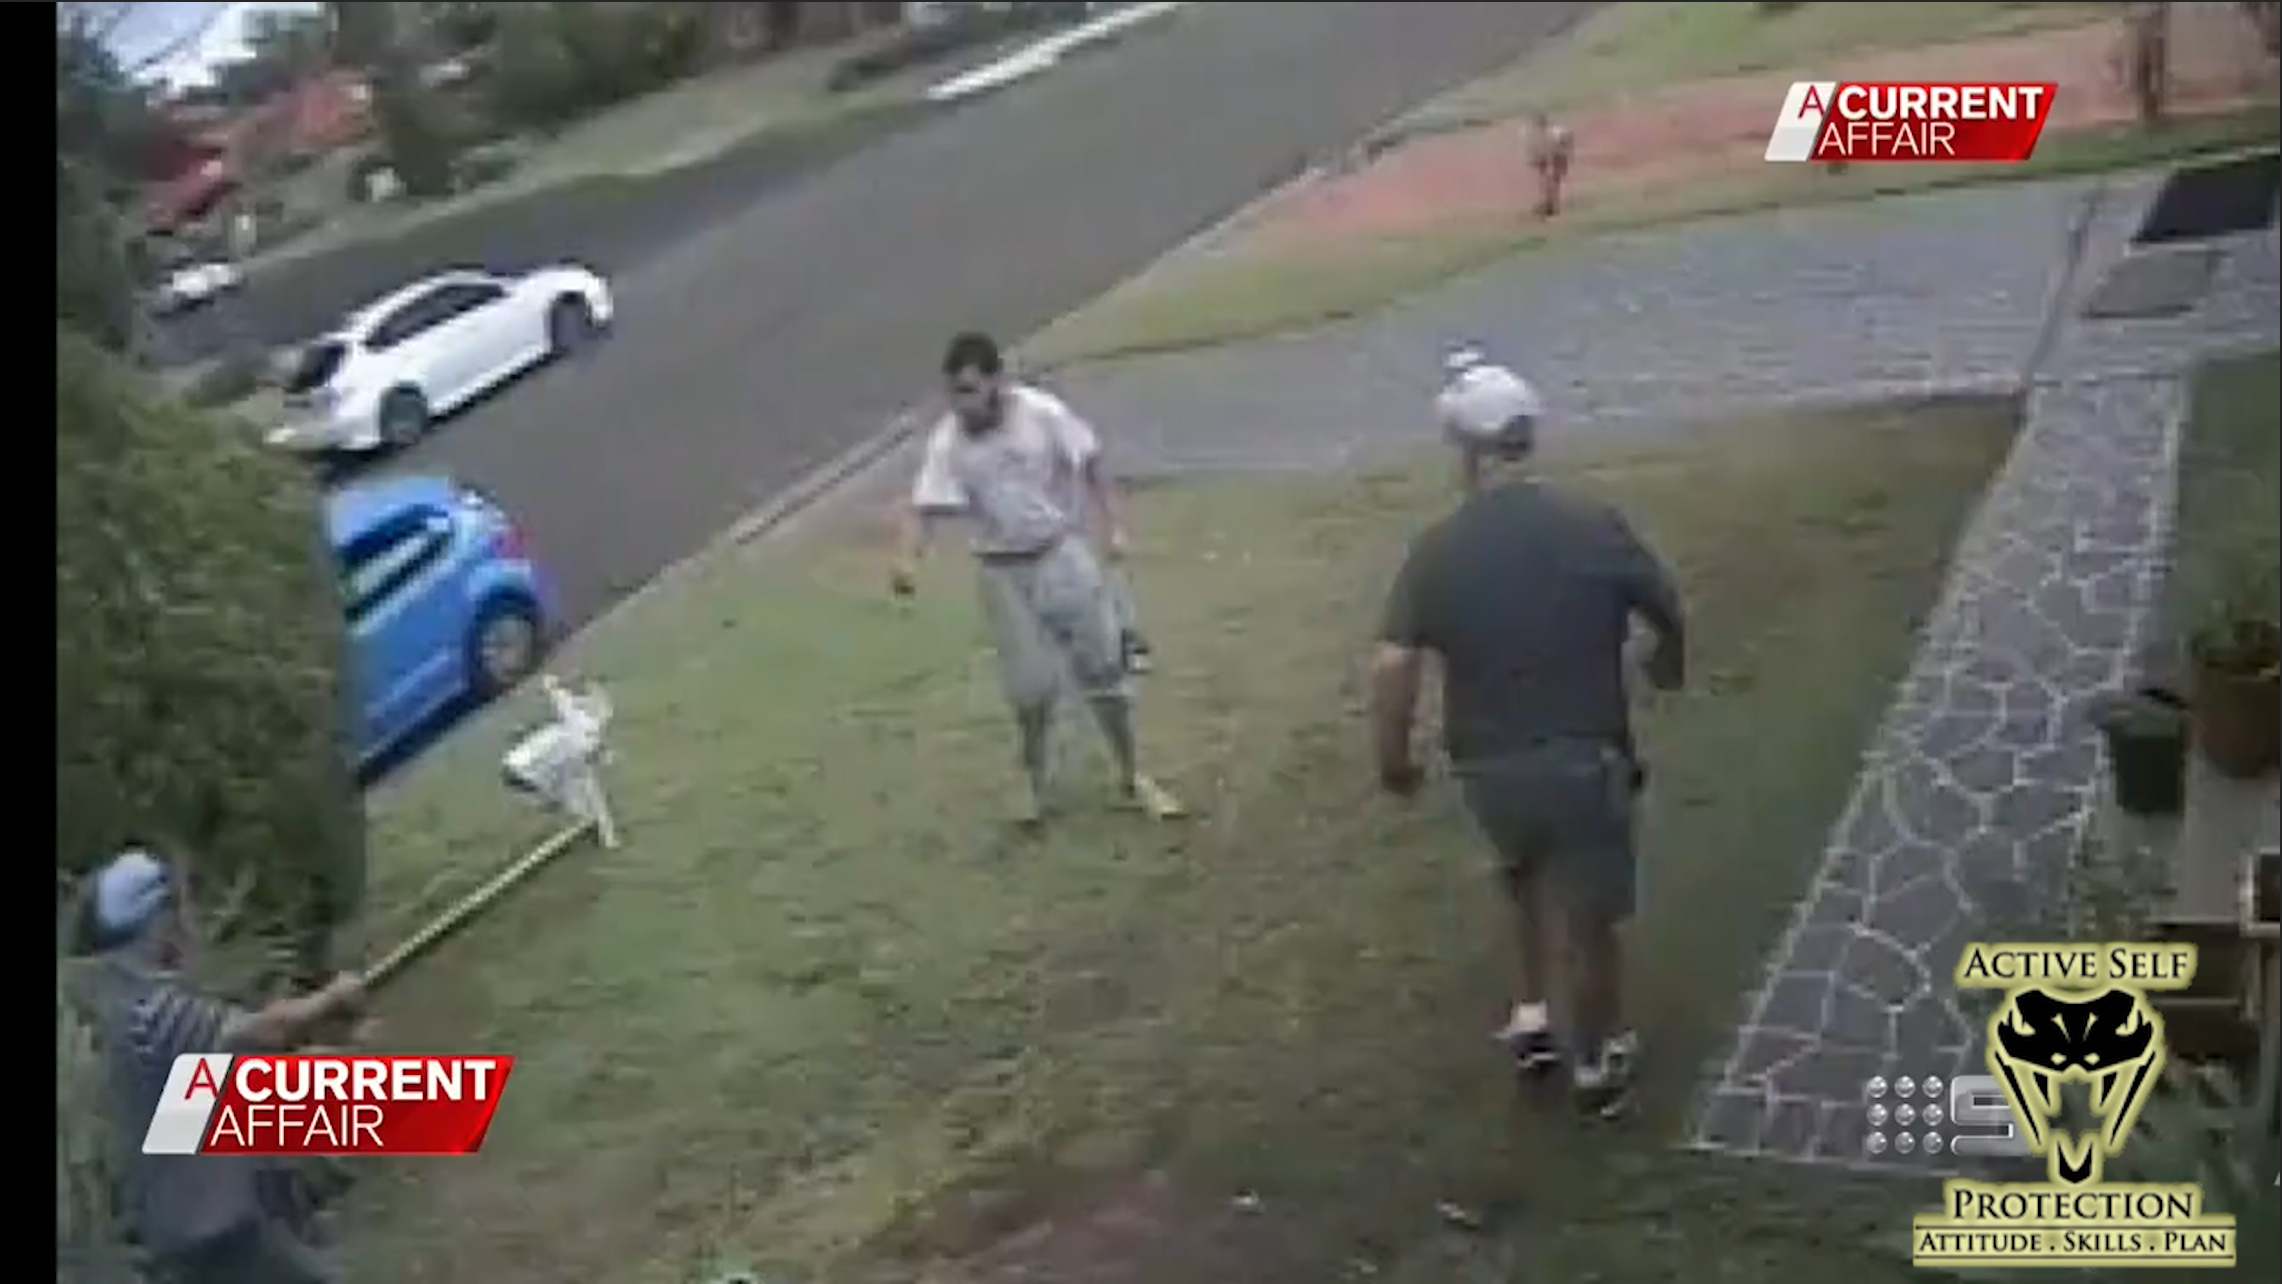 Scary Knife Attack in Australia Caught on Video